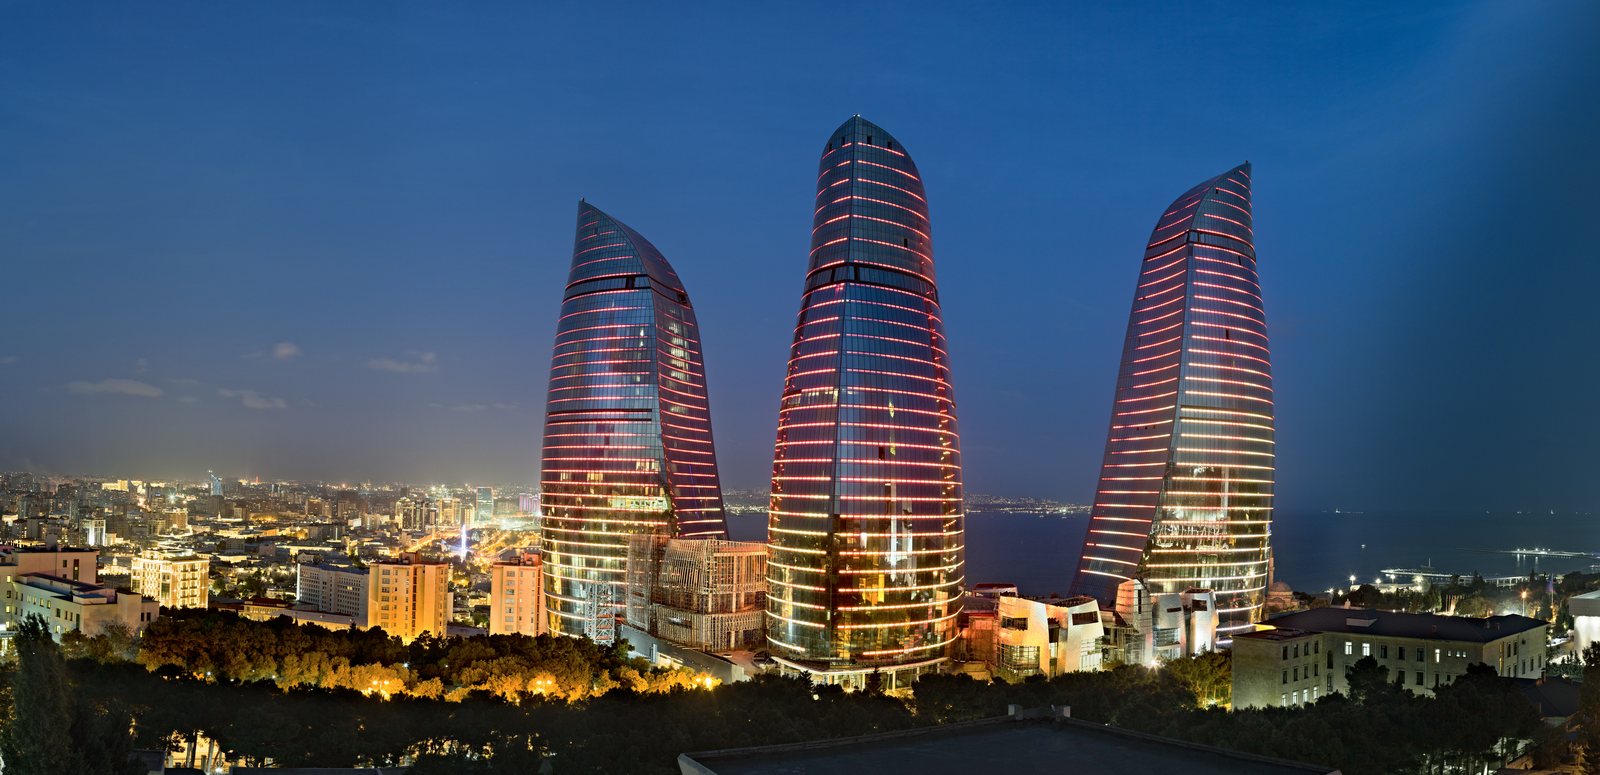 Flame tower Azerbaijan